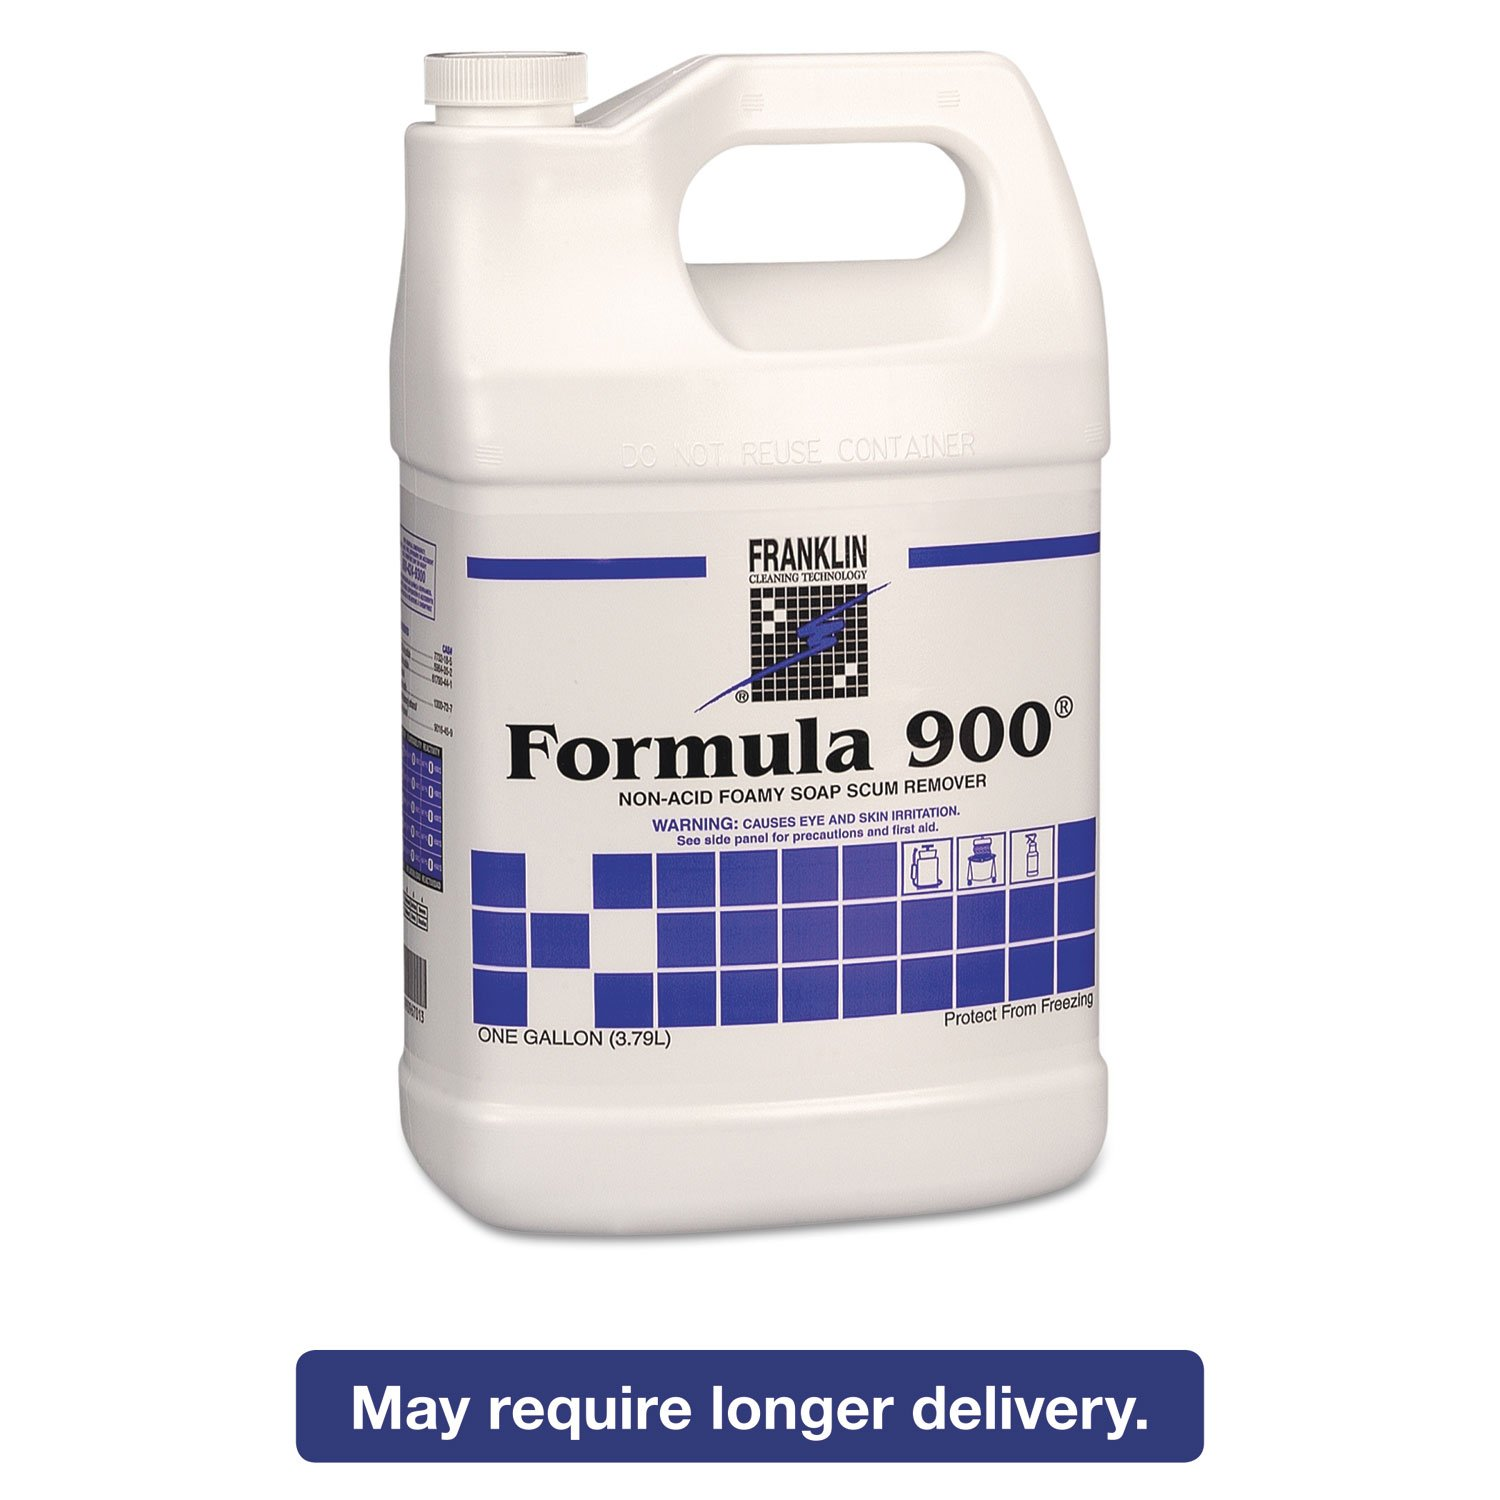 Franklin Cleaning Technology F967022 Formula 900 Soap Scum Remover, 1 Gallon (Pack of 4) by Fuller Commercial Products